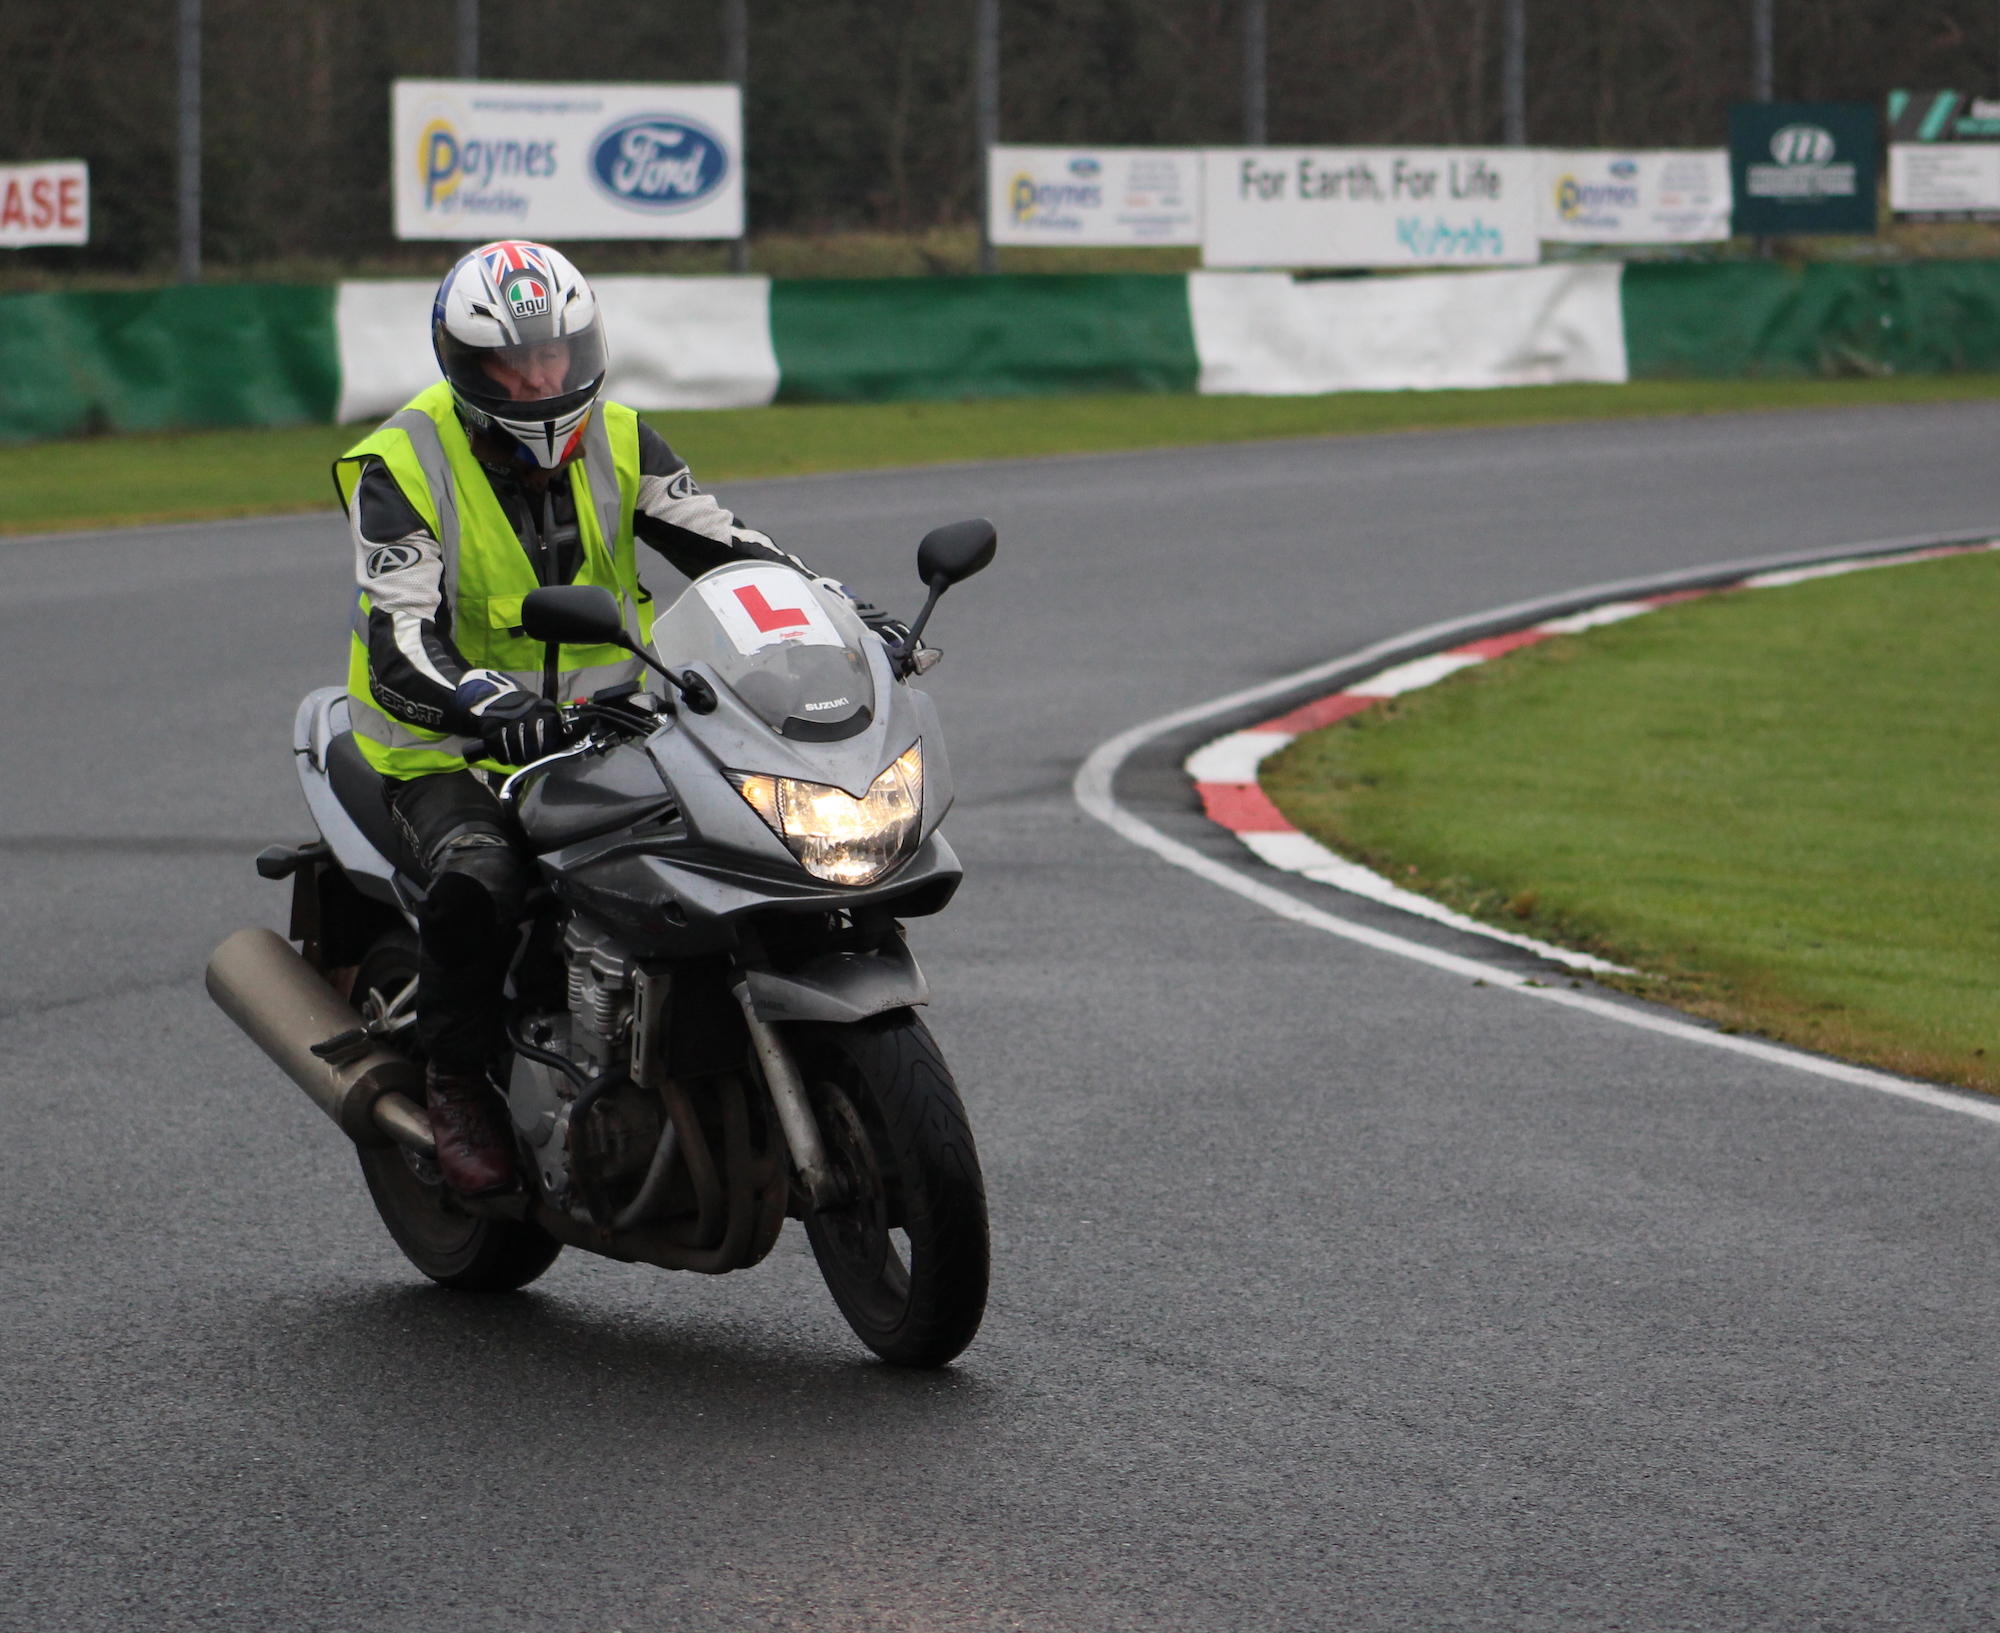 Motorcycle test at Malloy Park, Leicester